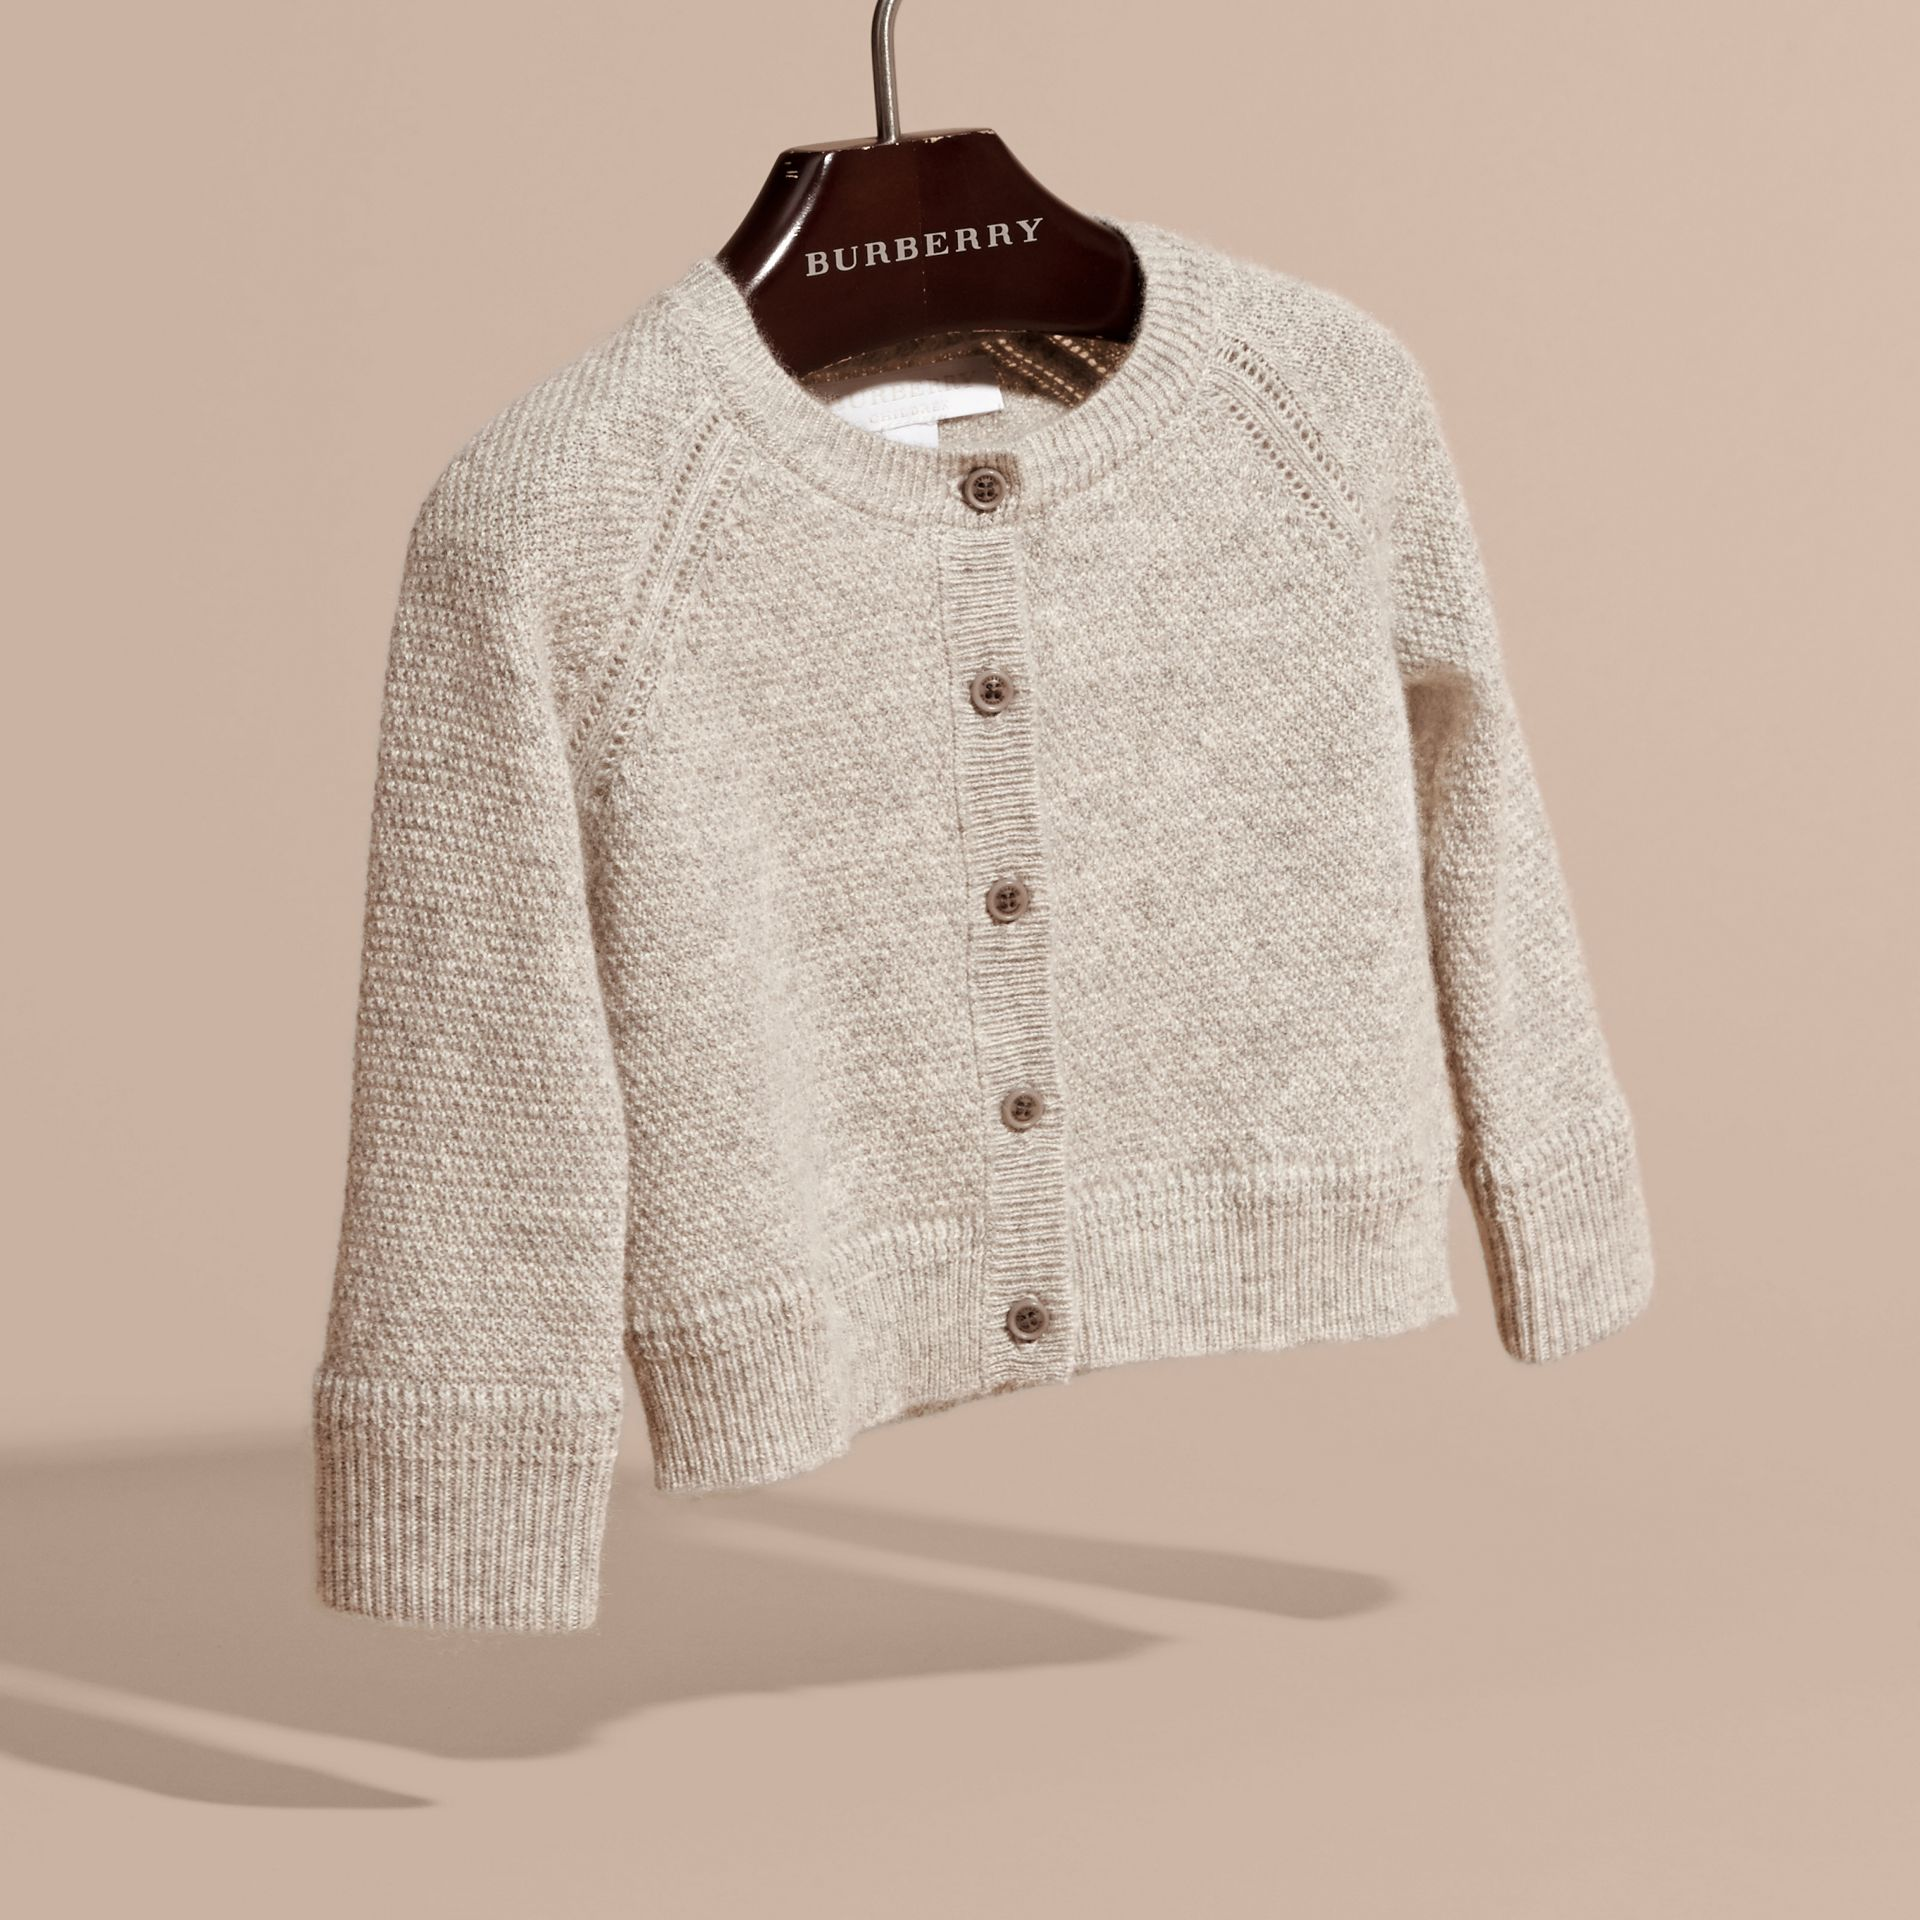 Textured Knit Cashmere Cardigan in Light Grey Melange | Burberry United Kingdom - gallery image 3